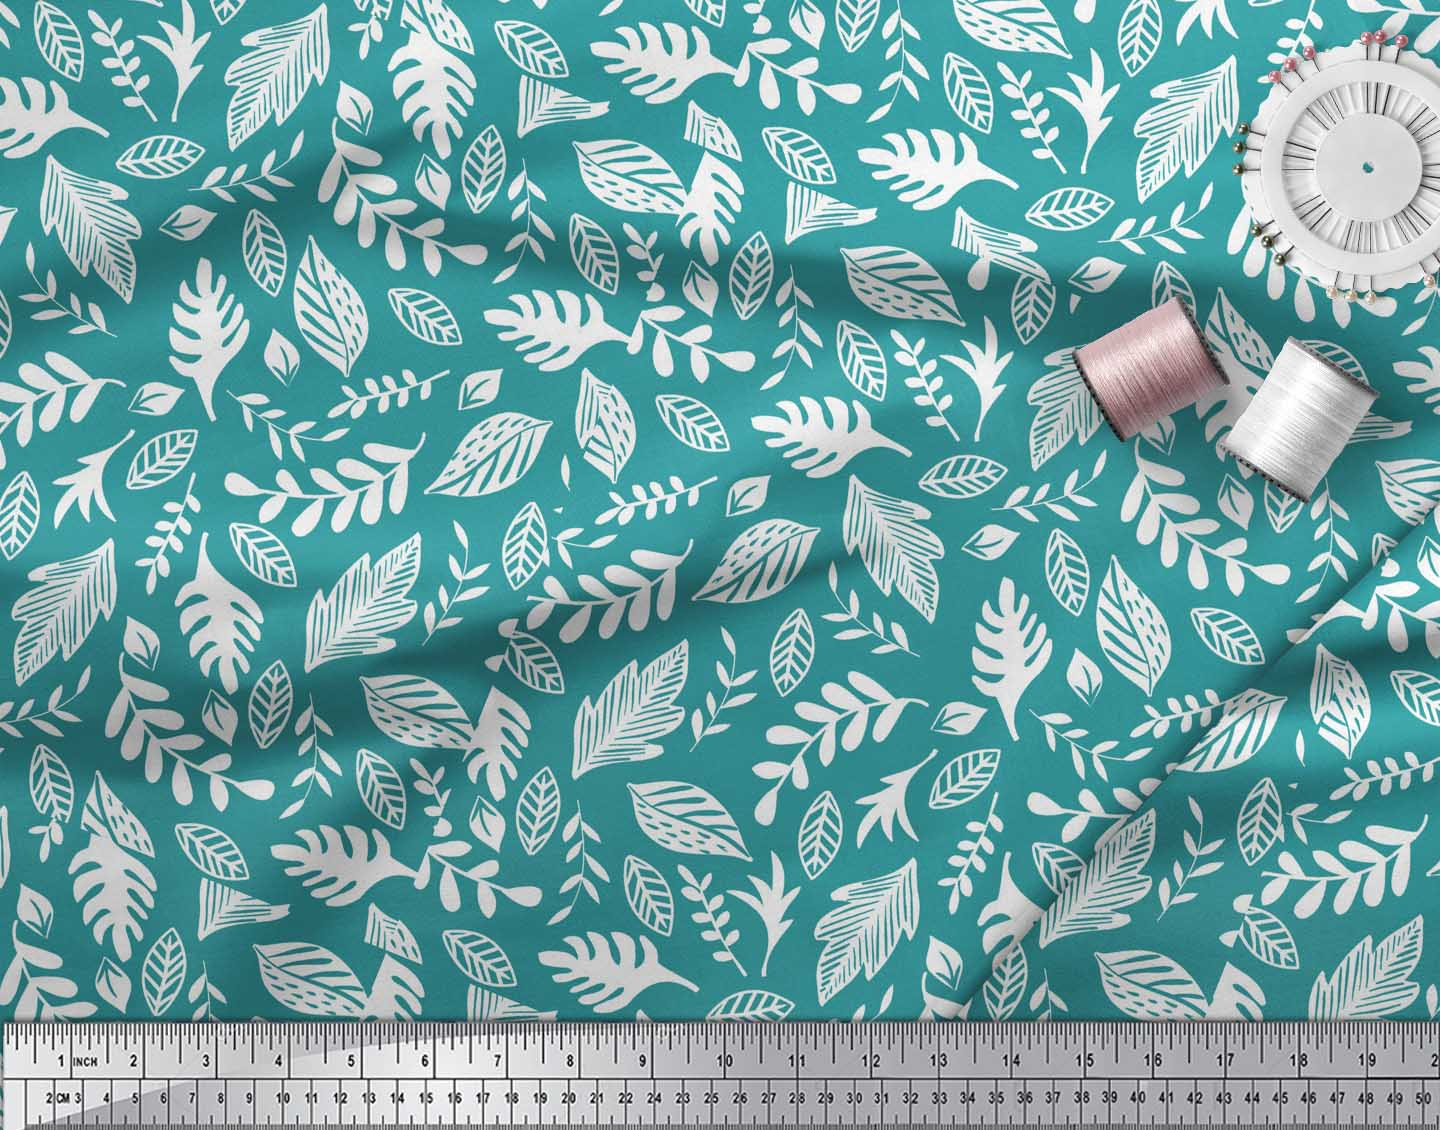 Soimoi-Green-Cotton-Poplin-Fabric-Tropical-Leaves-Print-Fabric-by-JQI thumbnail 4